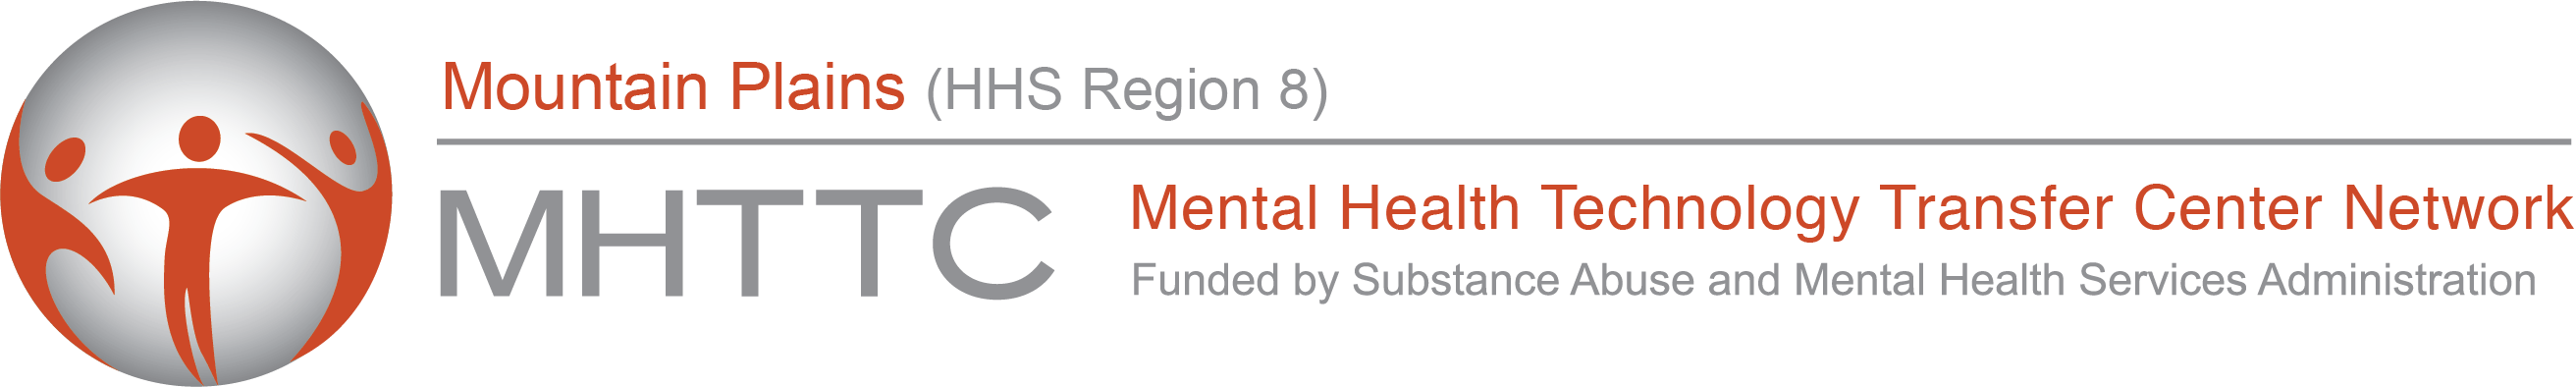 Mountain Plains Mental Heath Technology Transfer Center Logo